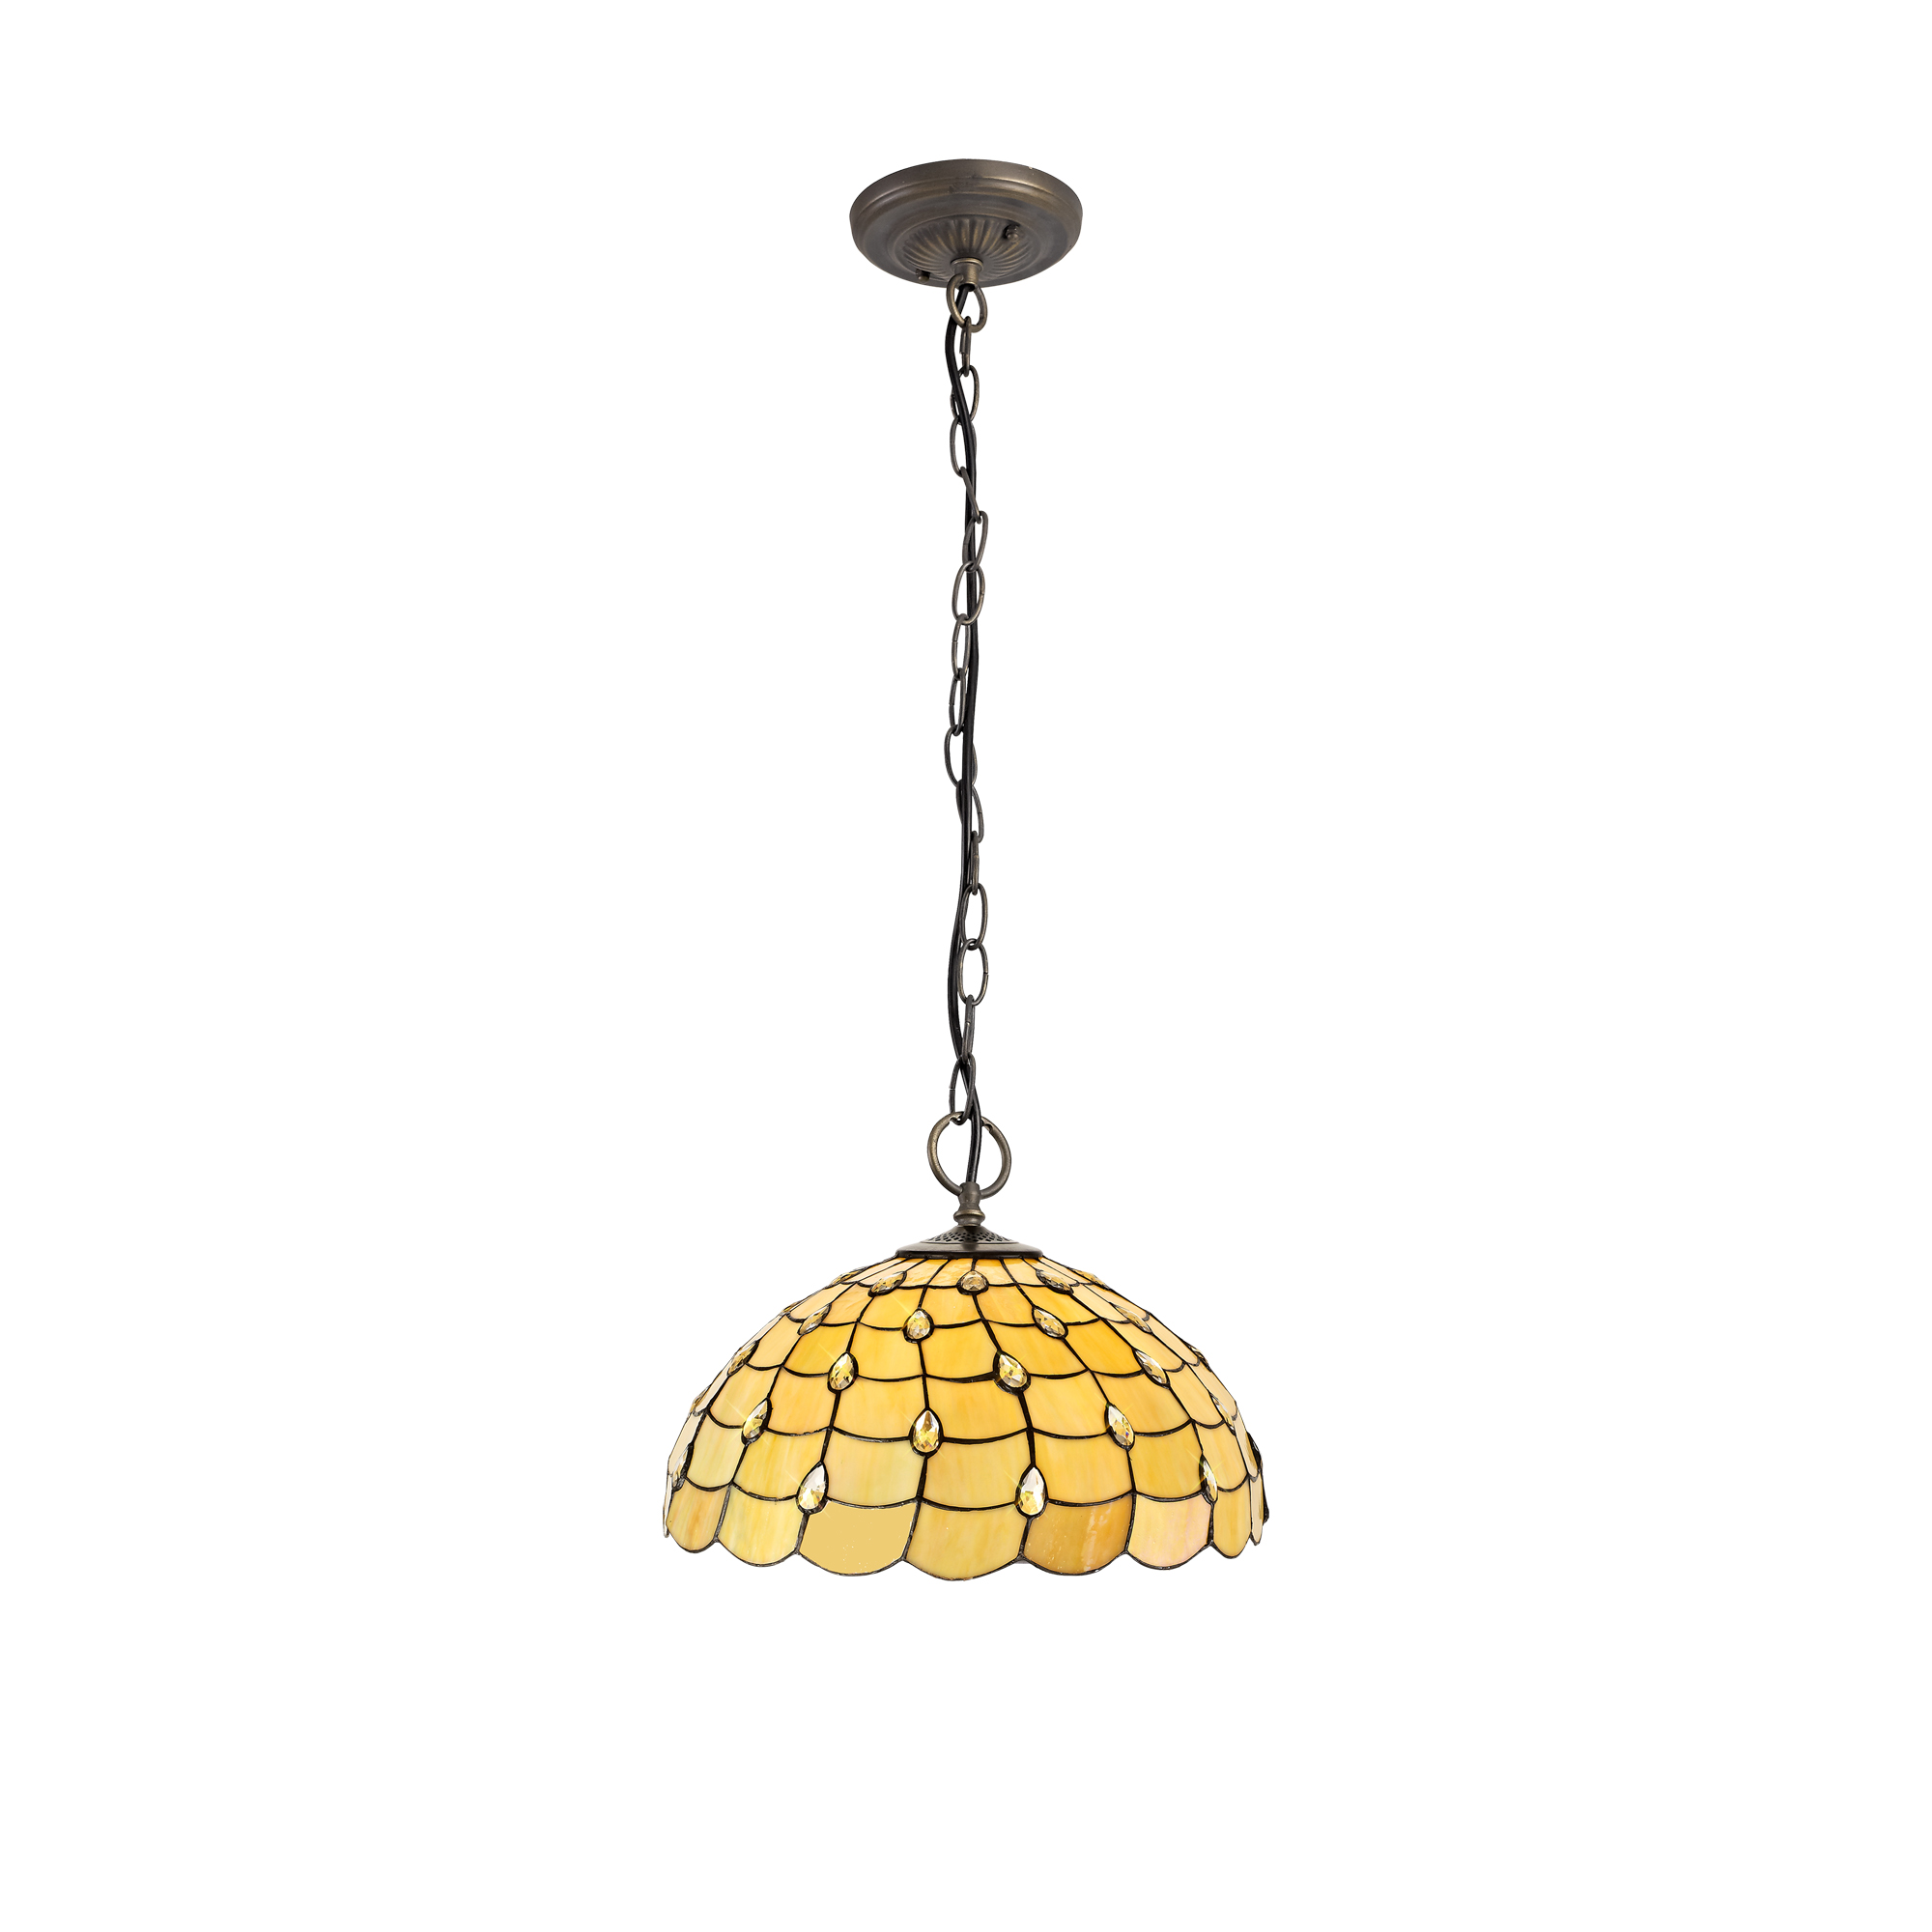 3 Light Downlighter Pendant E27 With 50cm Tiffany Shade, Beige/Clear Crystal/Aged Antique Brass